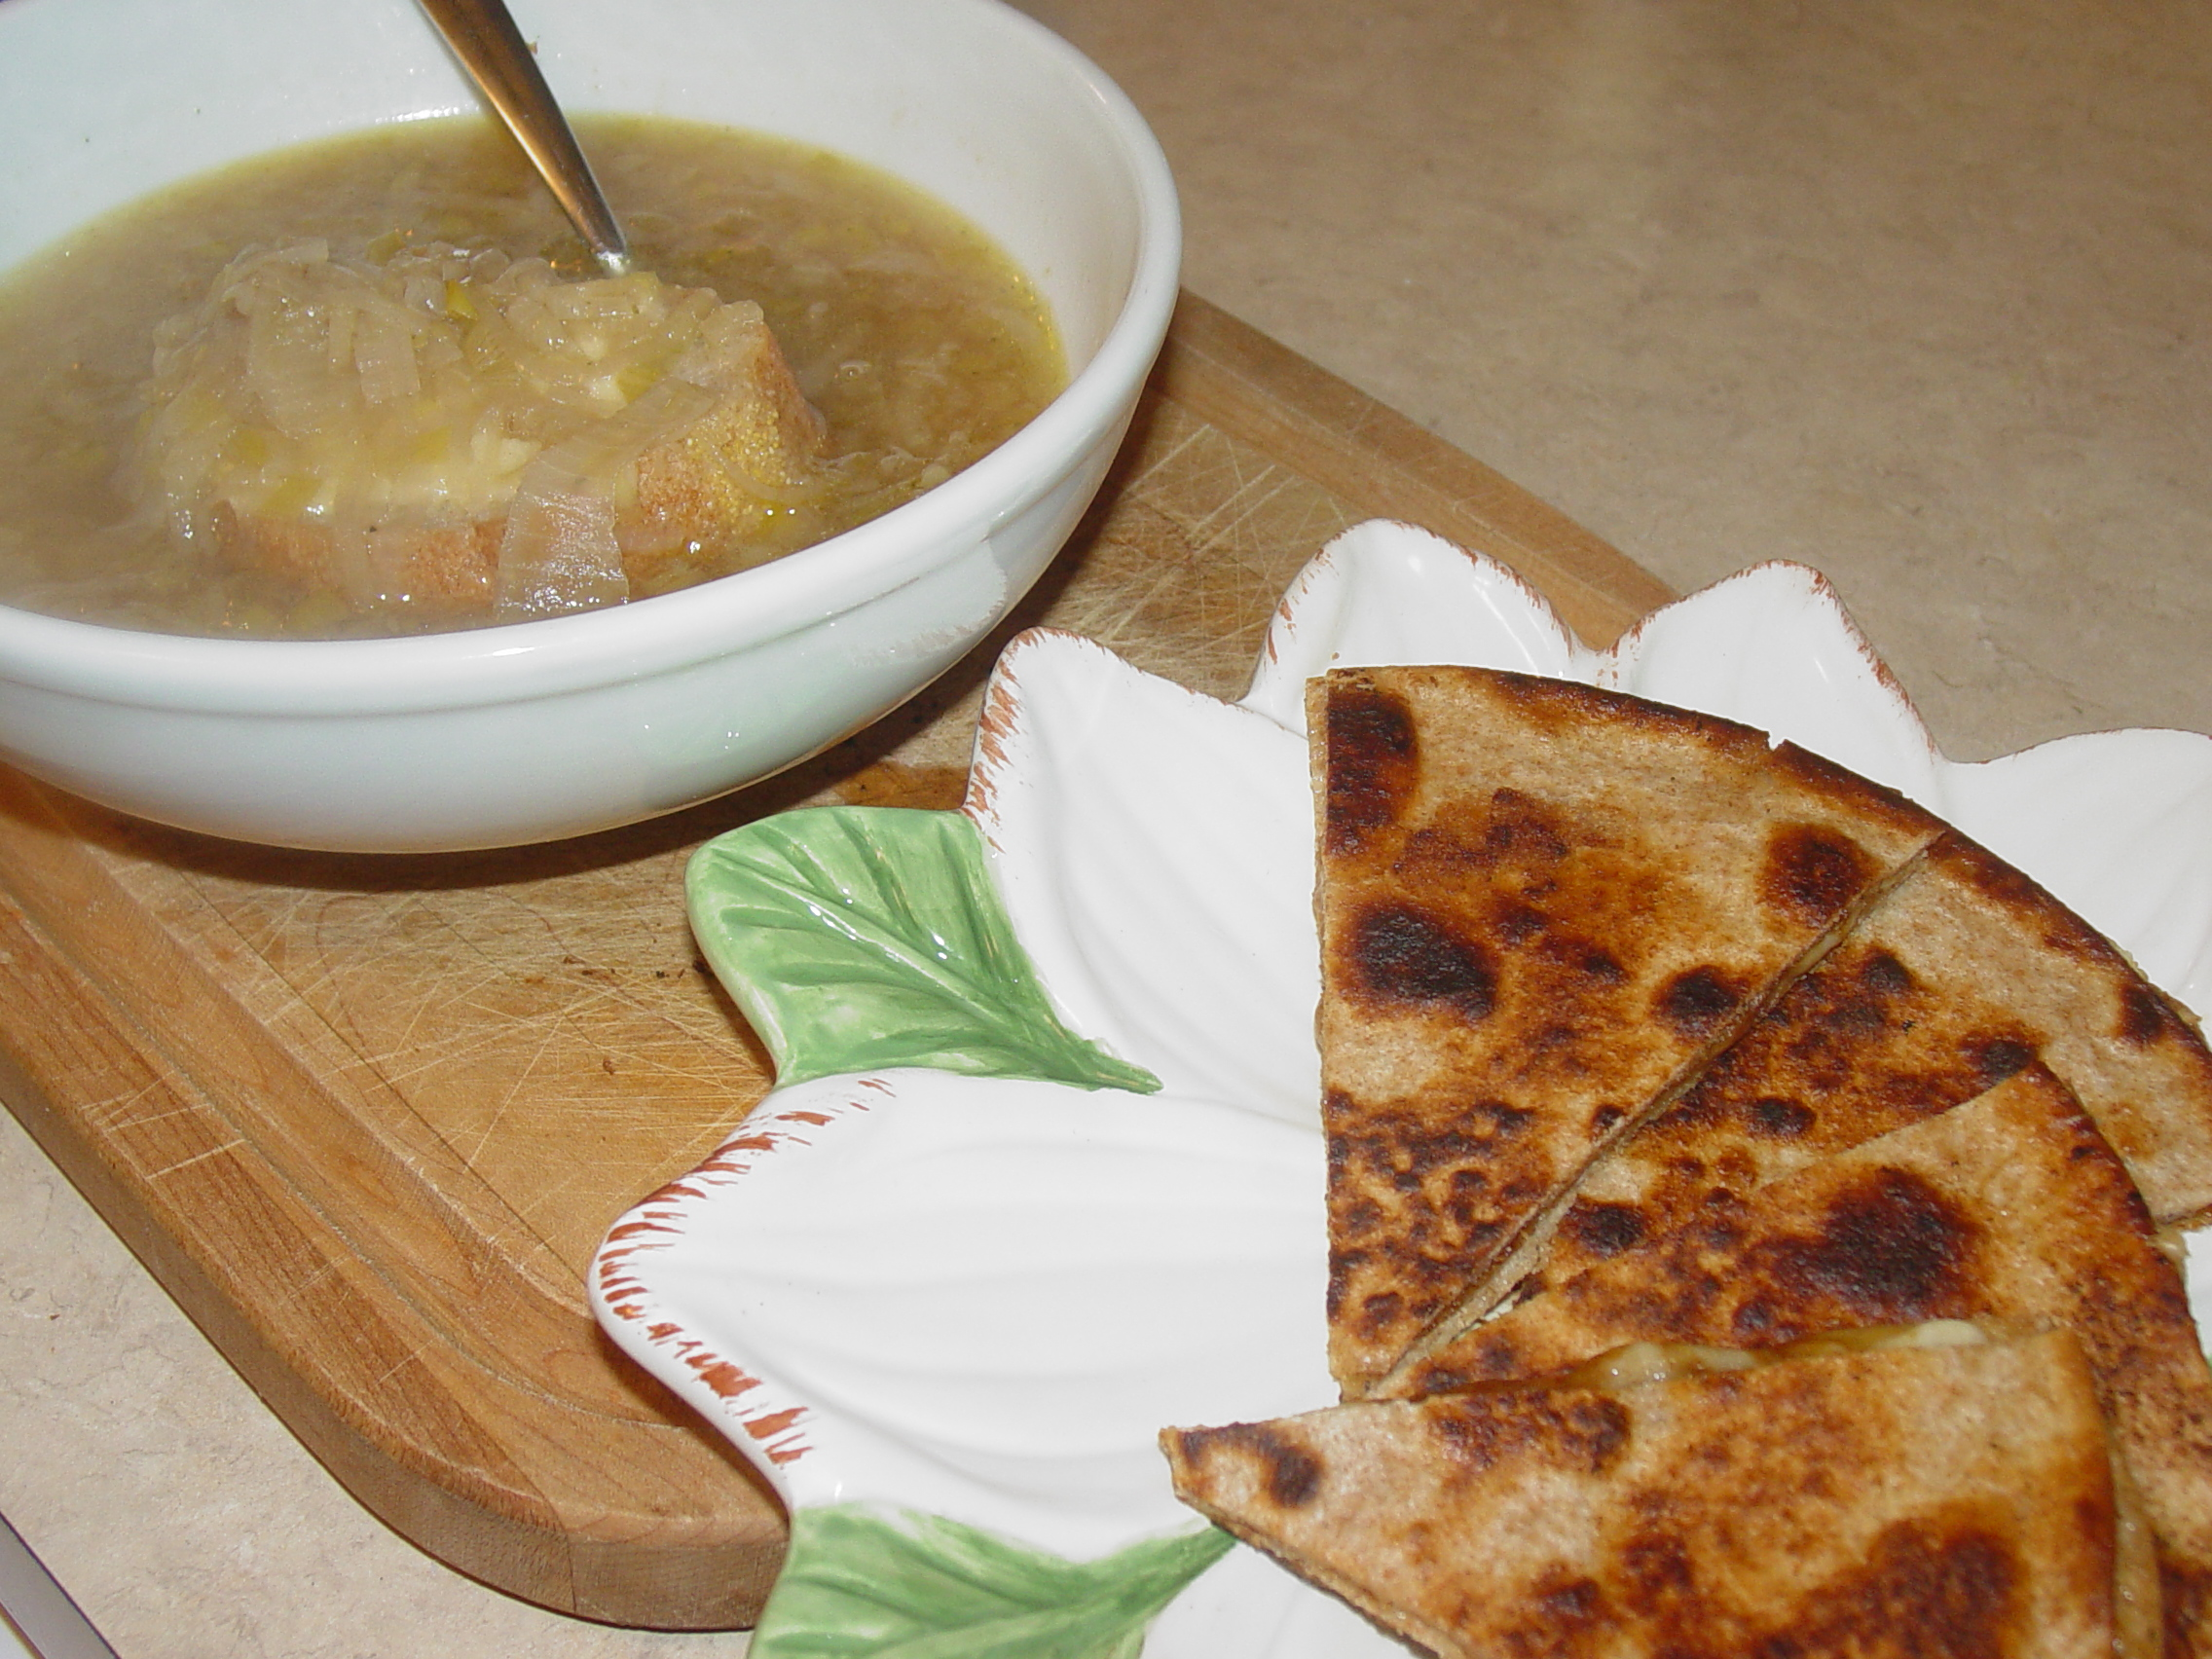 French Onion Soup with Turkish Cheese &amp; Date Syrup Quesadillas